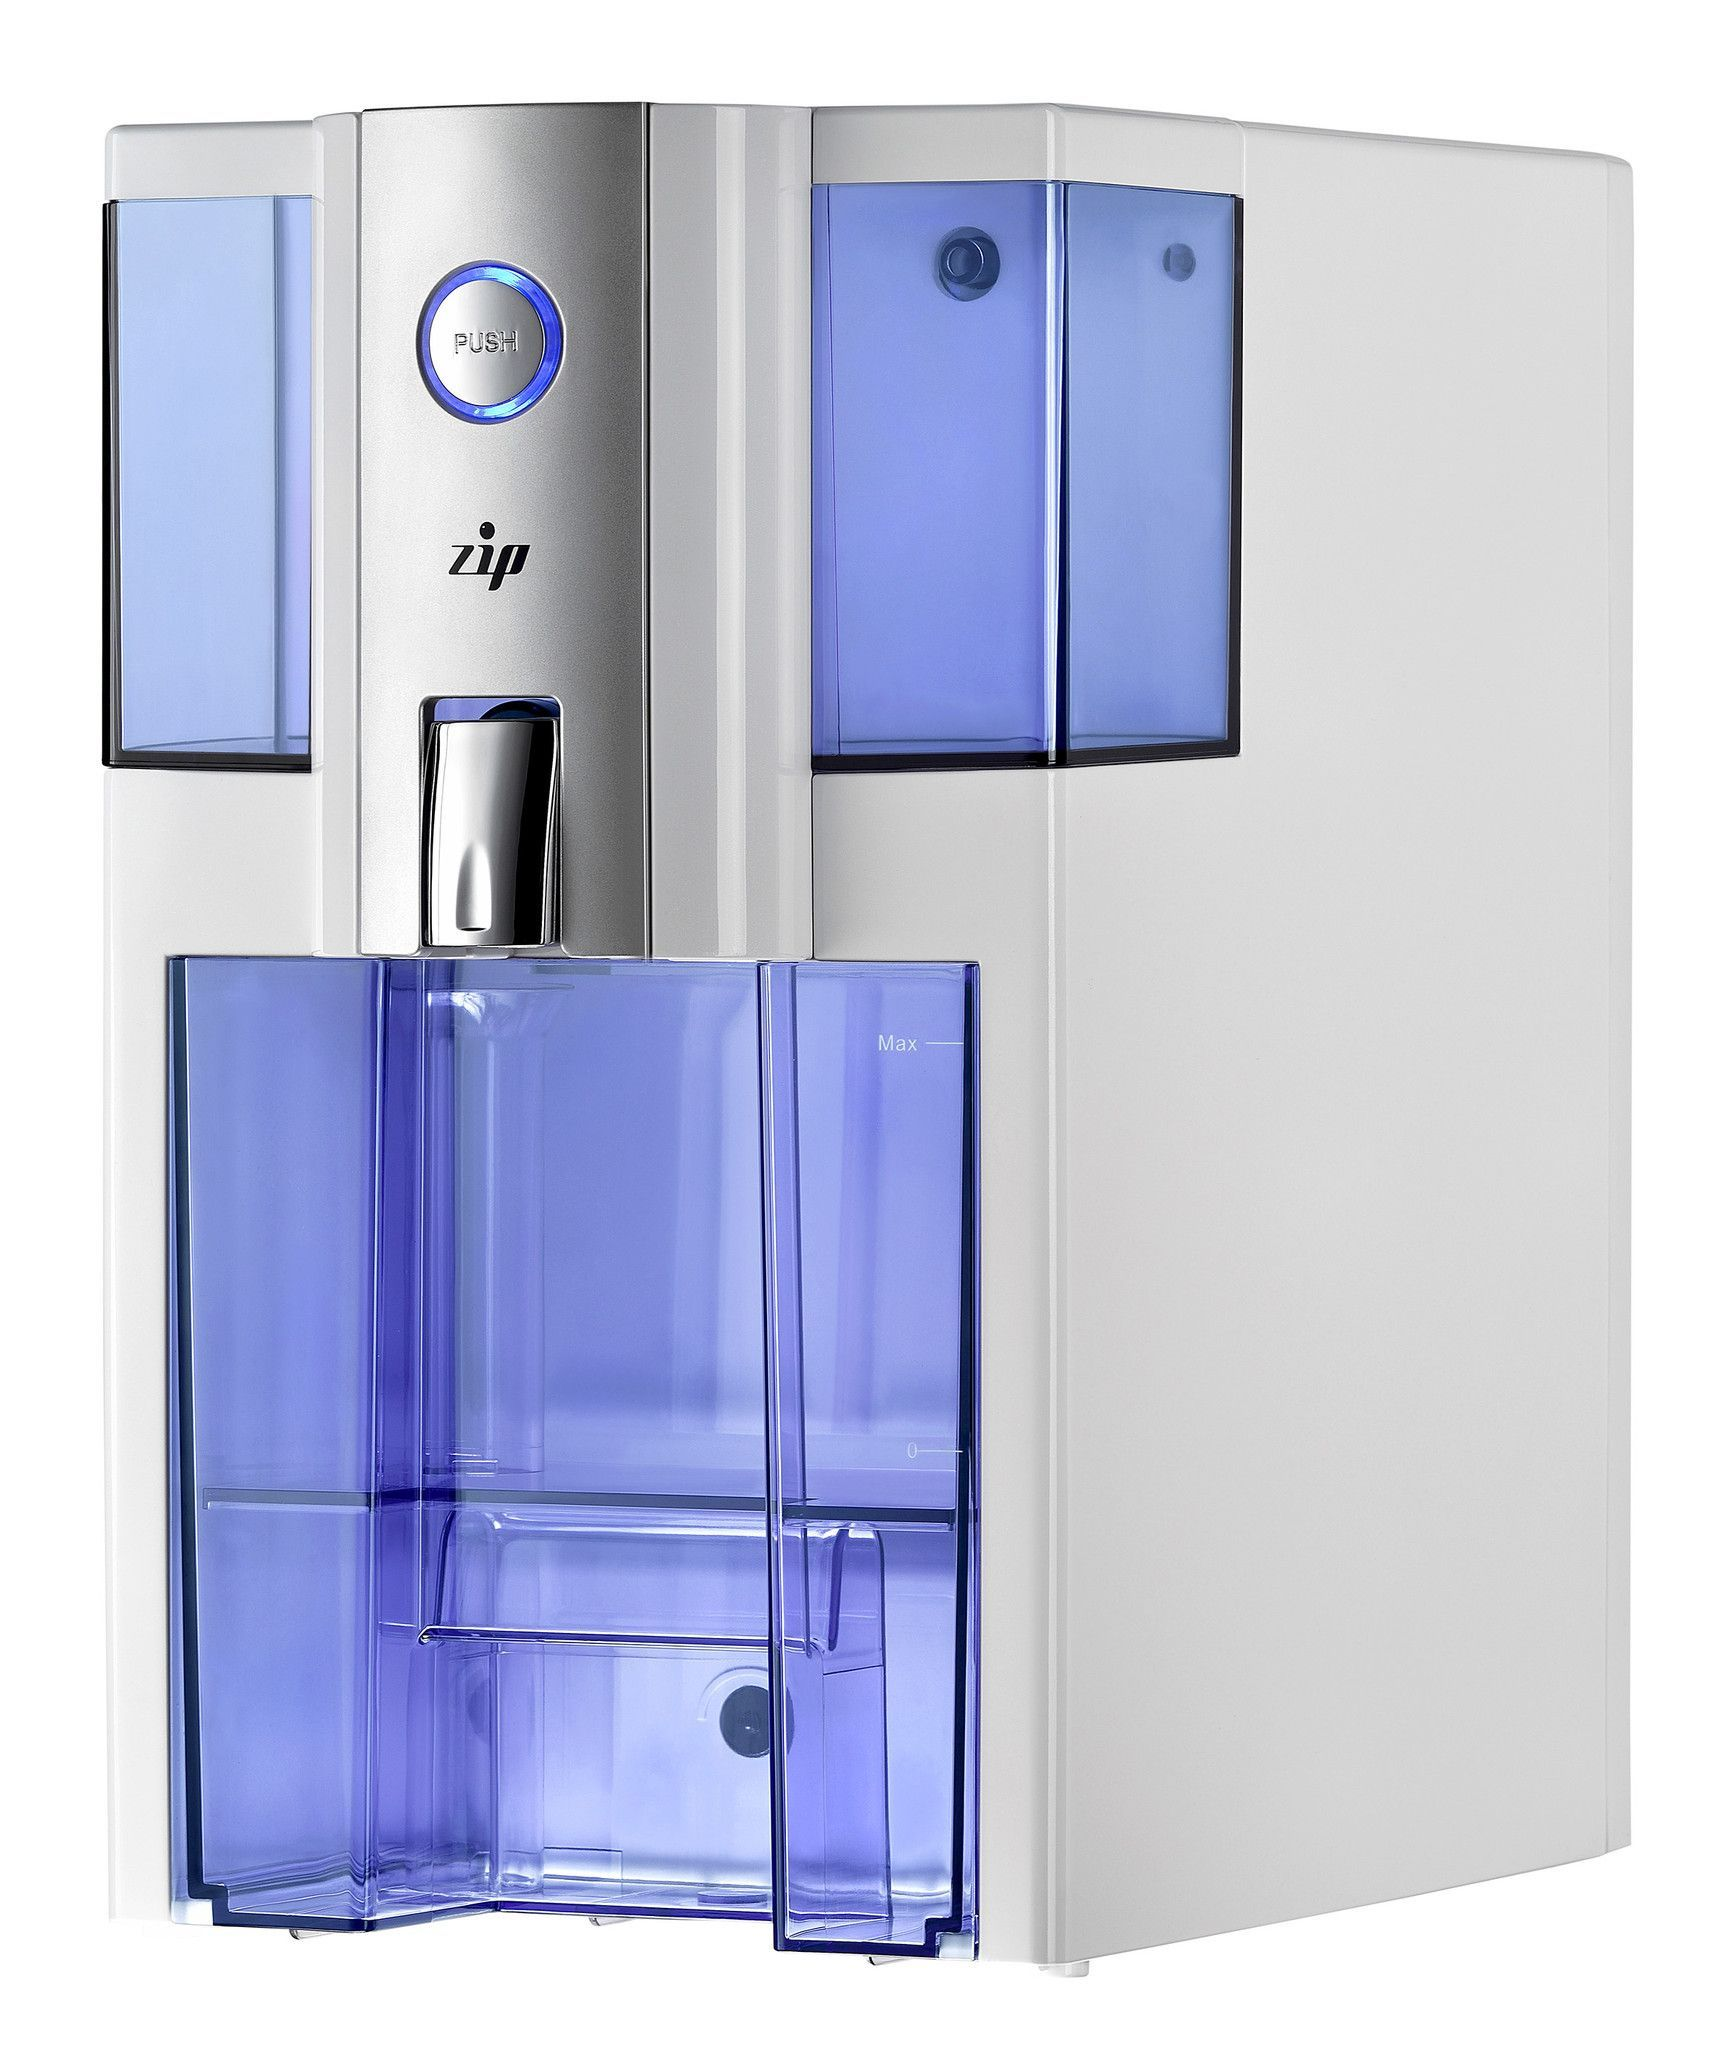 Puricom Zip Countertop Reverse Osmosis Water Filtration System Zip2wht